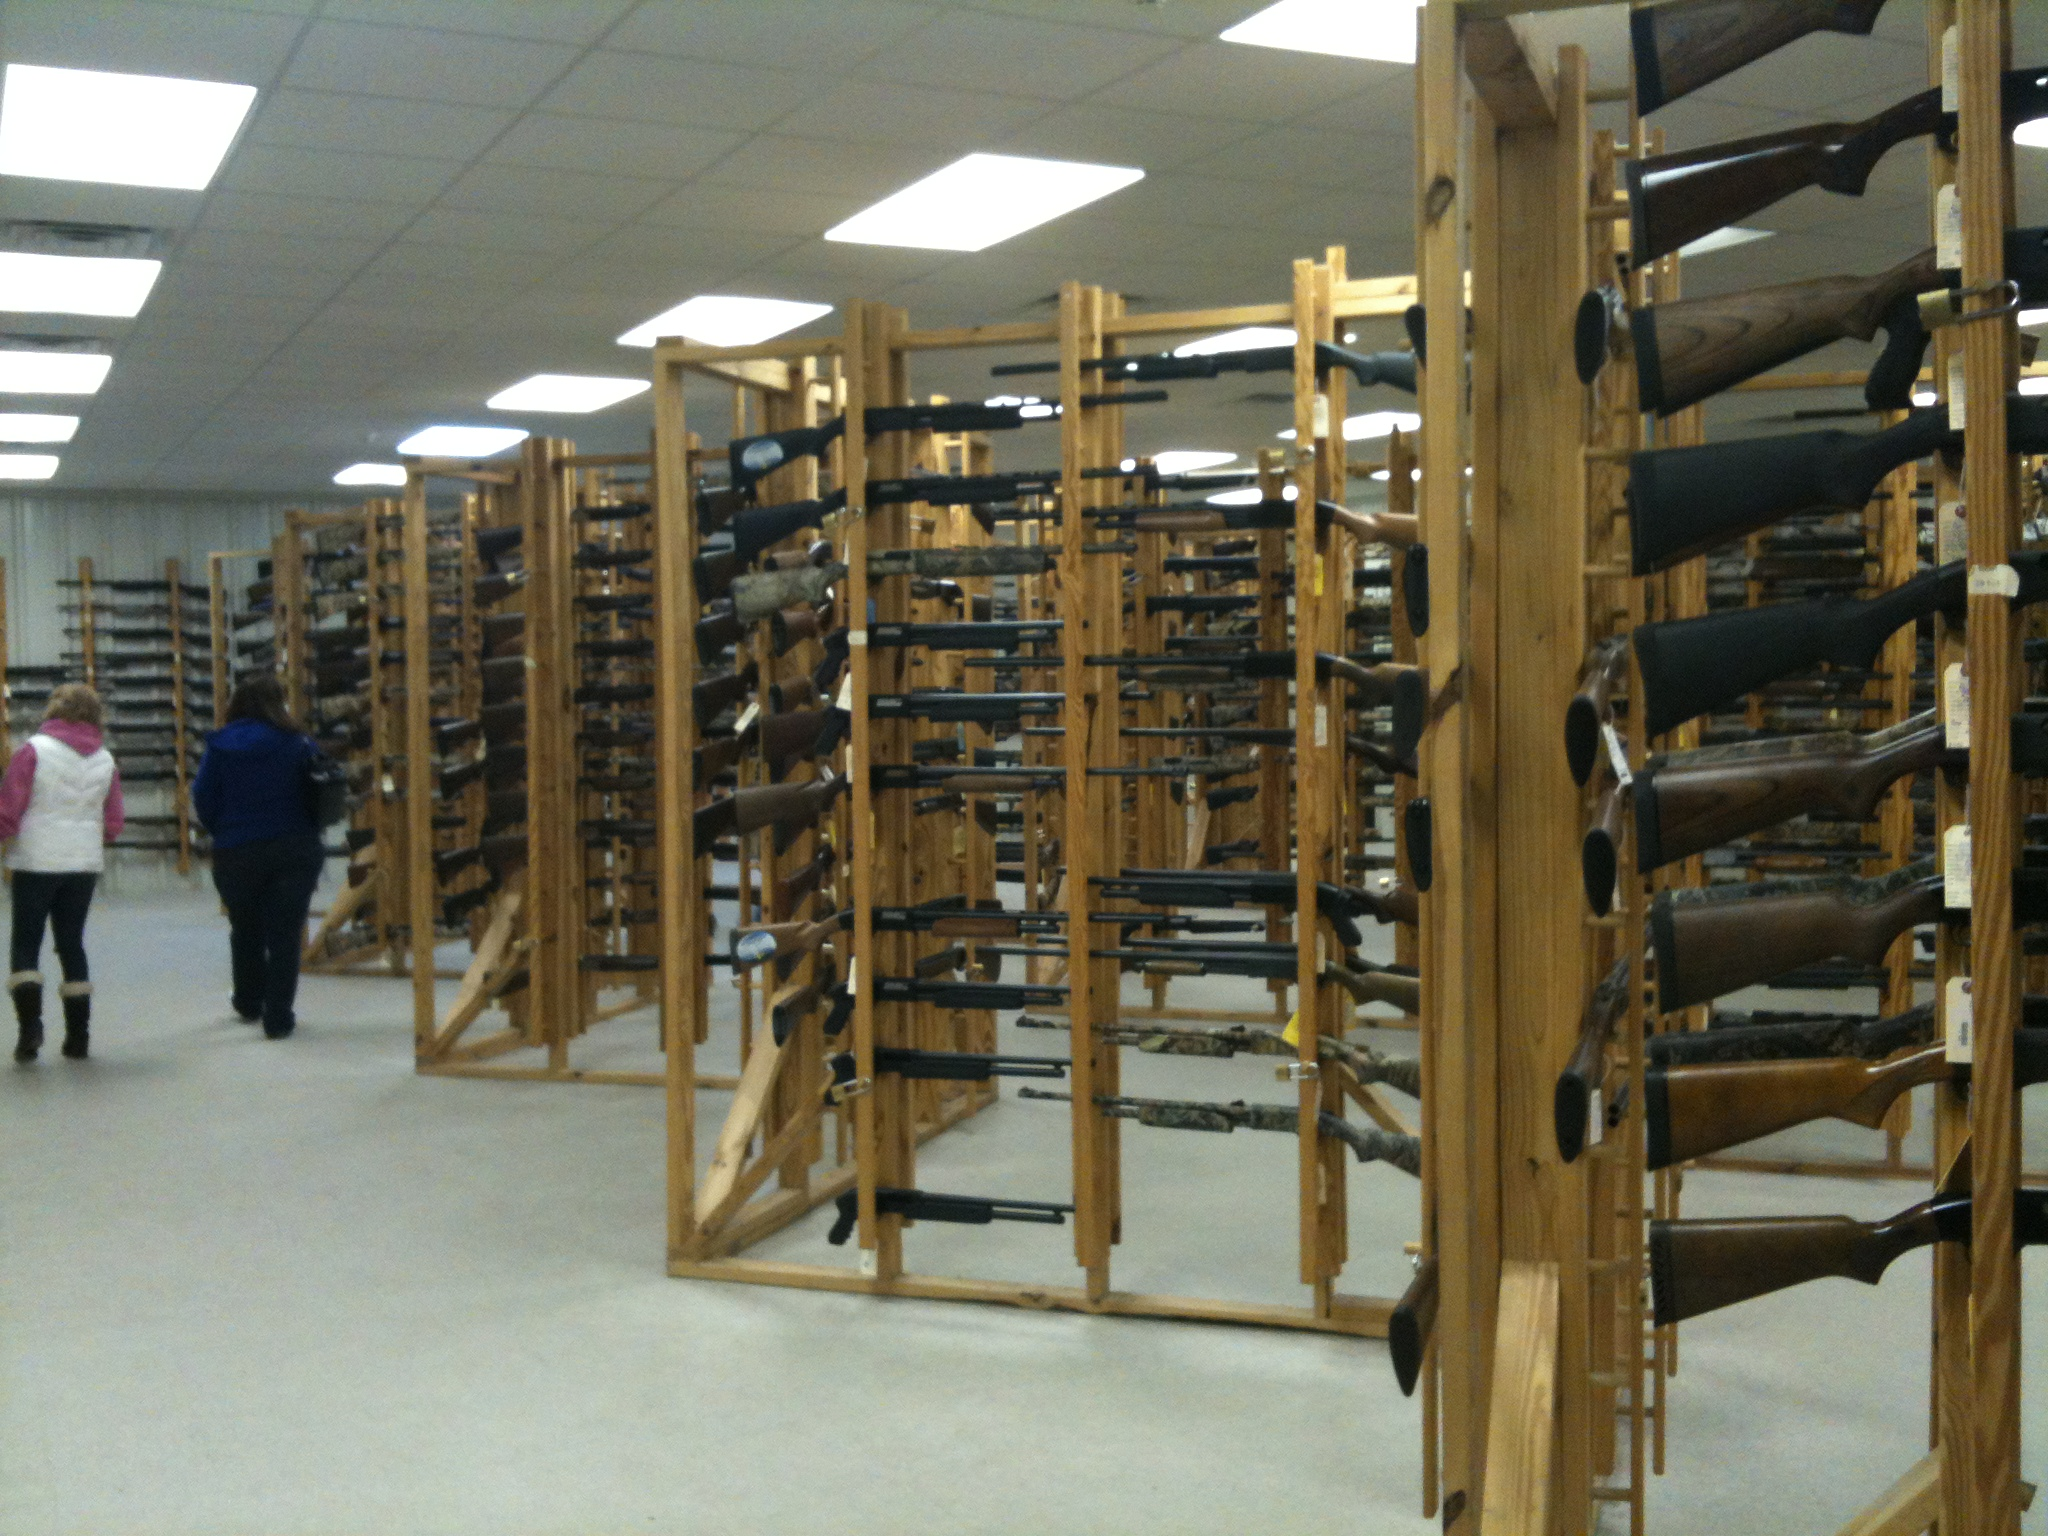 The modern day sporting shotgun section. These are mostly pump action and semi automatic shotguns. The single shot, doubles and Over and Unders are by the handgun display cases. Notice how the racks display as much of the firearm as possible and making it accessible to the customer but are also quite secure.